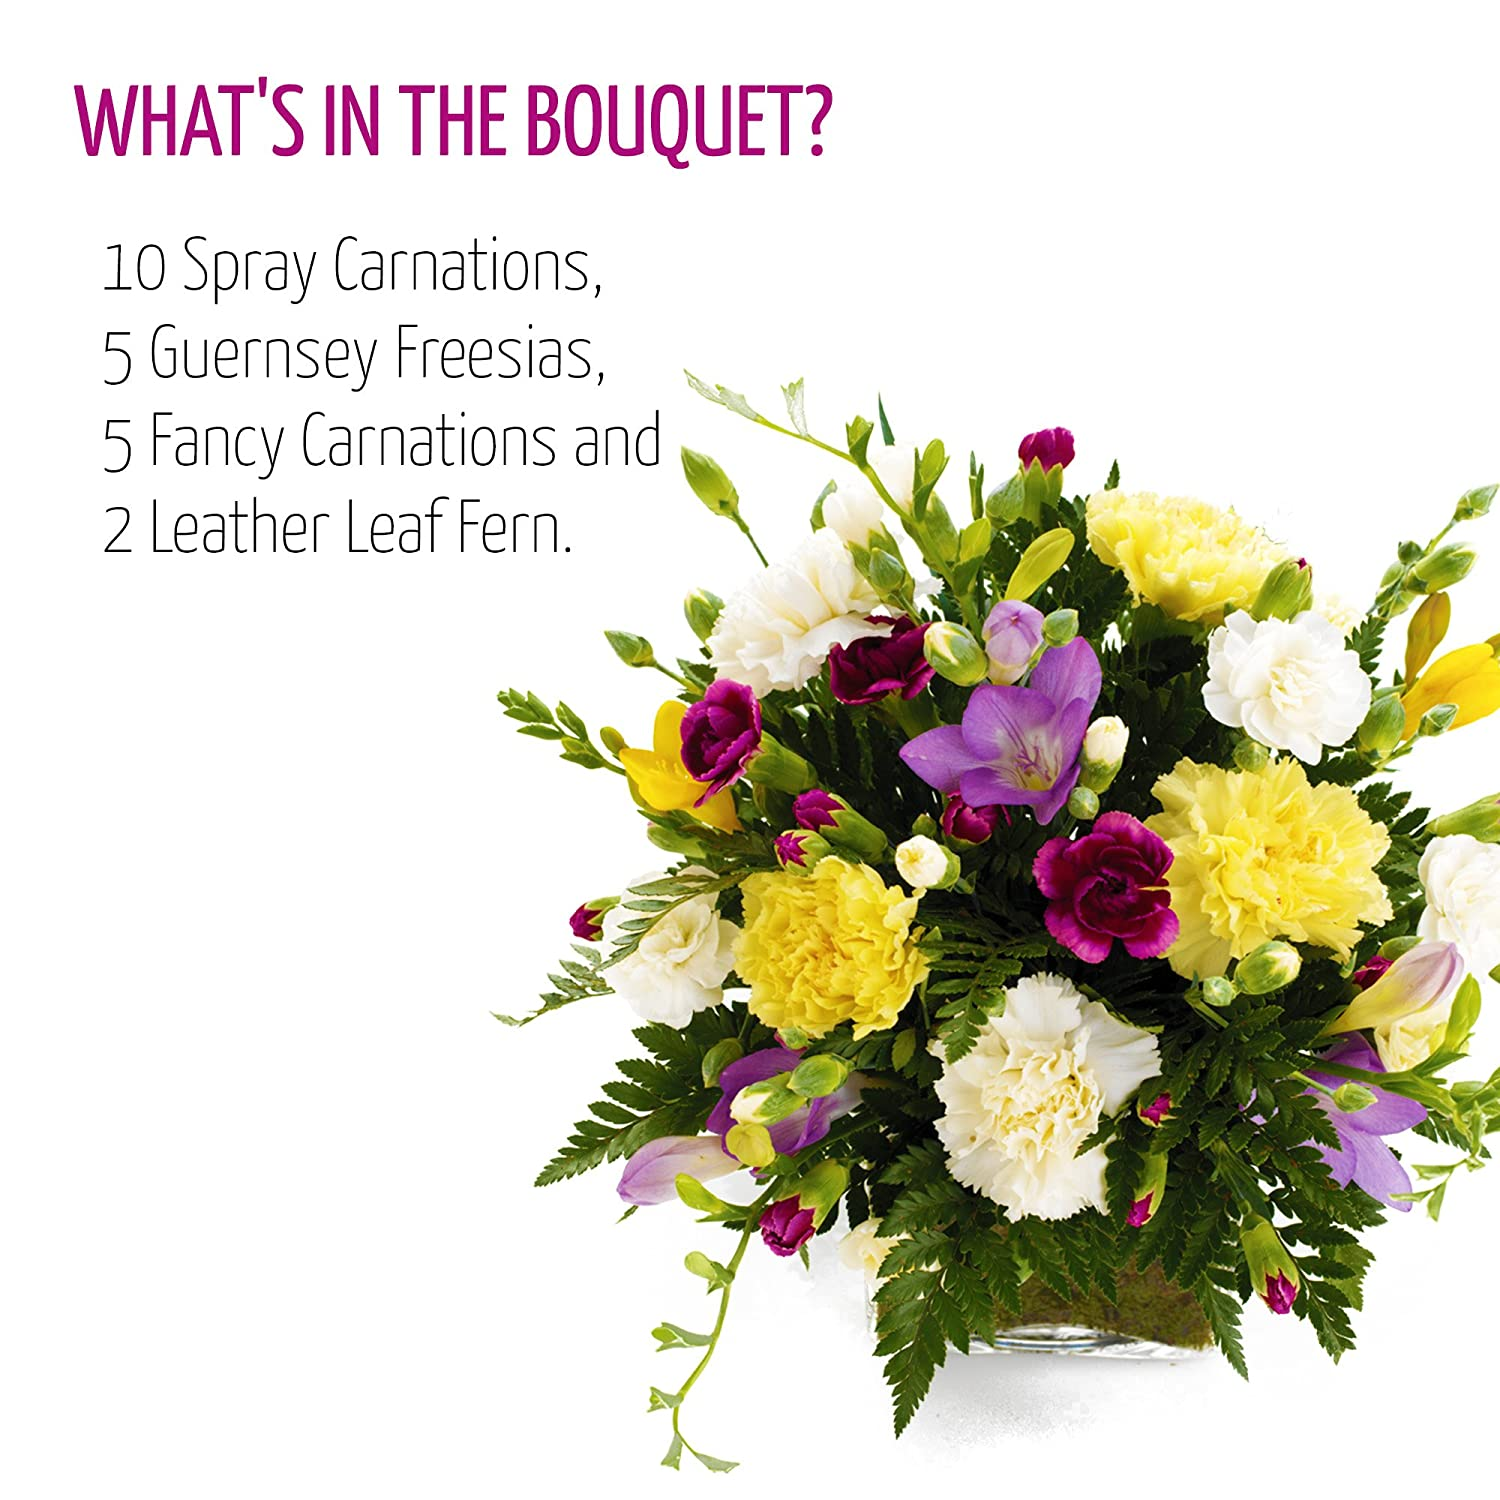 Fresh flowers delivered friendship bouquet including carnations fresh flowers delivered friendship bouquet including carnations and guernsey freesias with free chocolates flower food and bonus ebook guide perfect izmirmasajfo Gallery